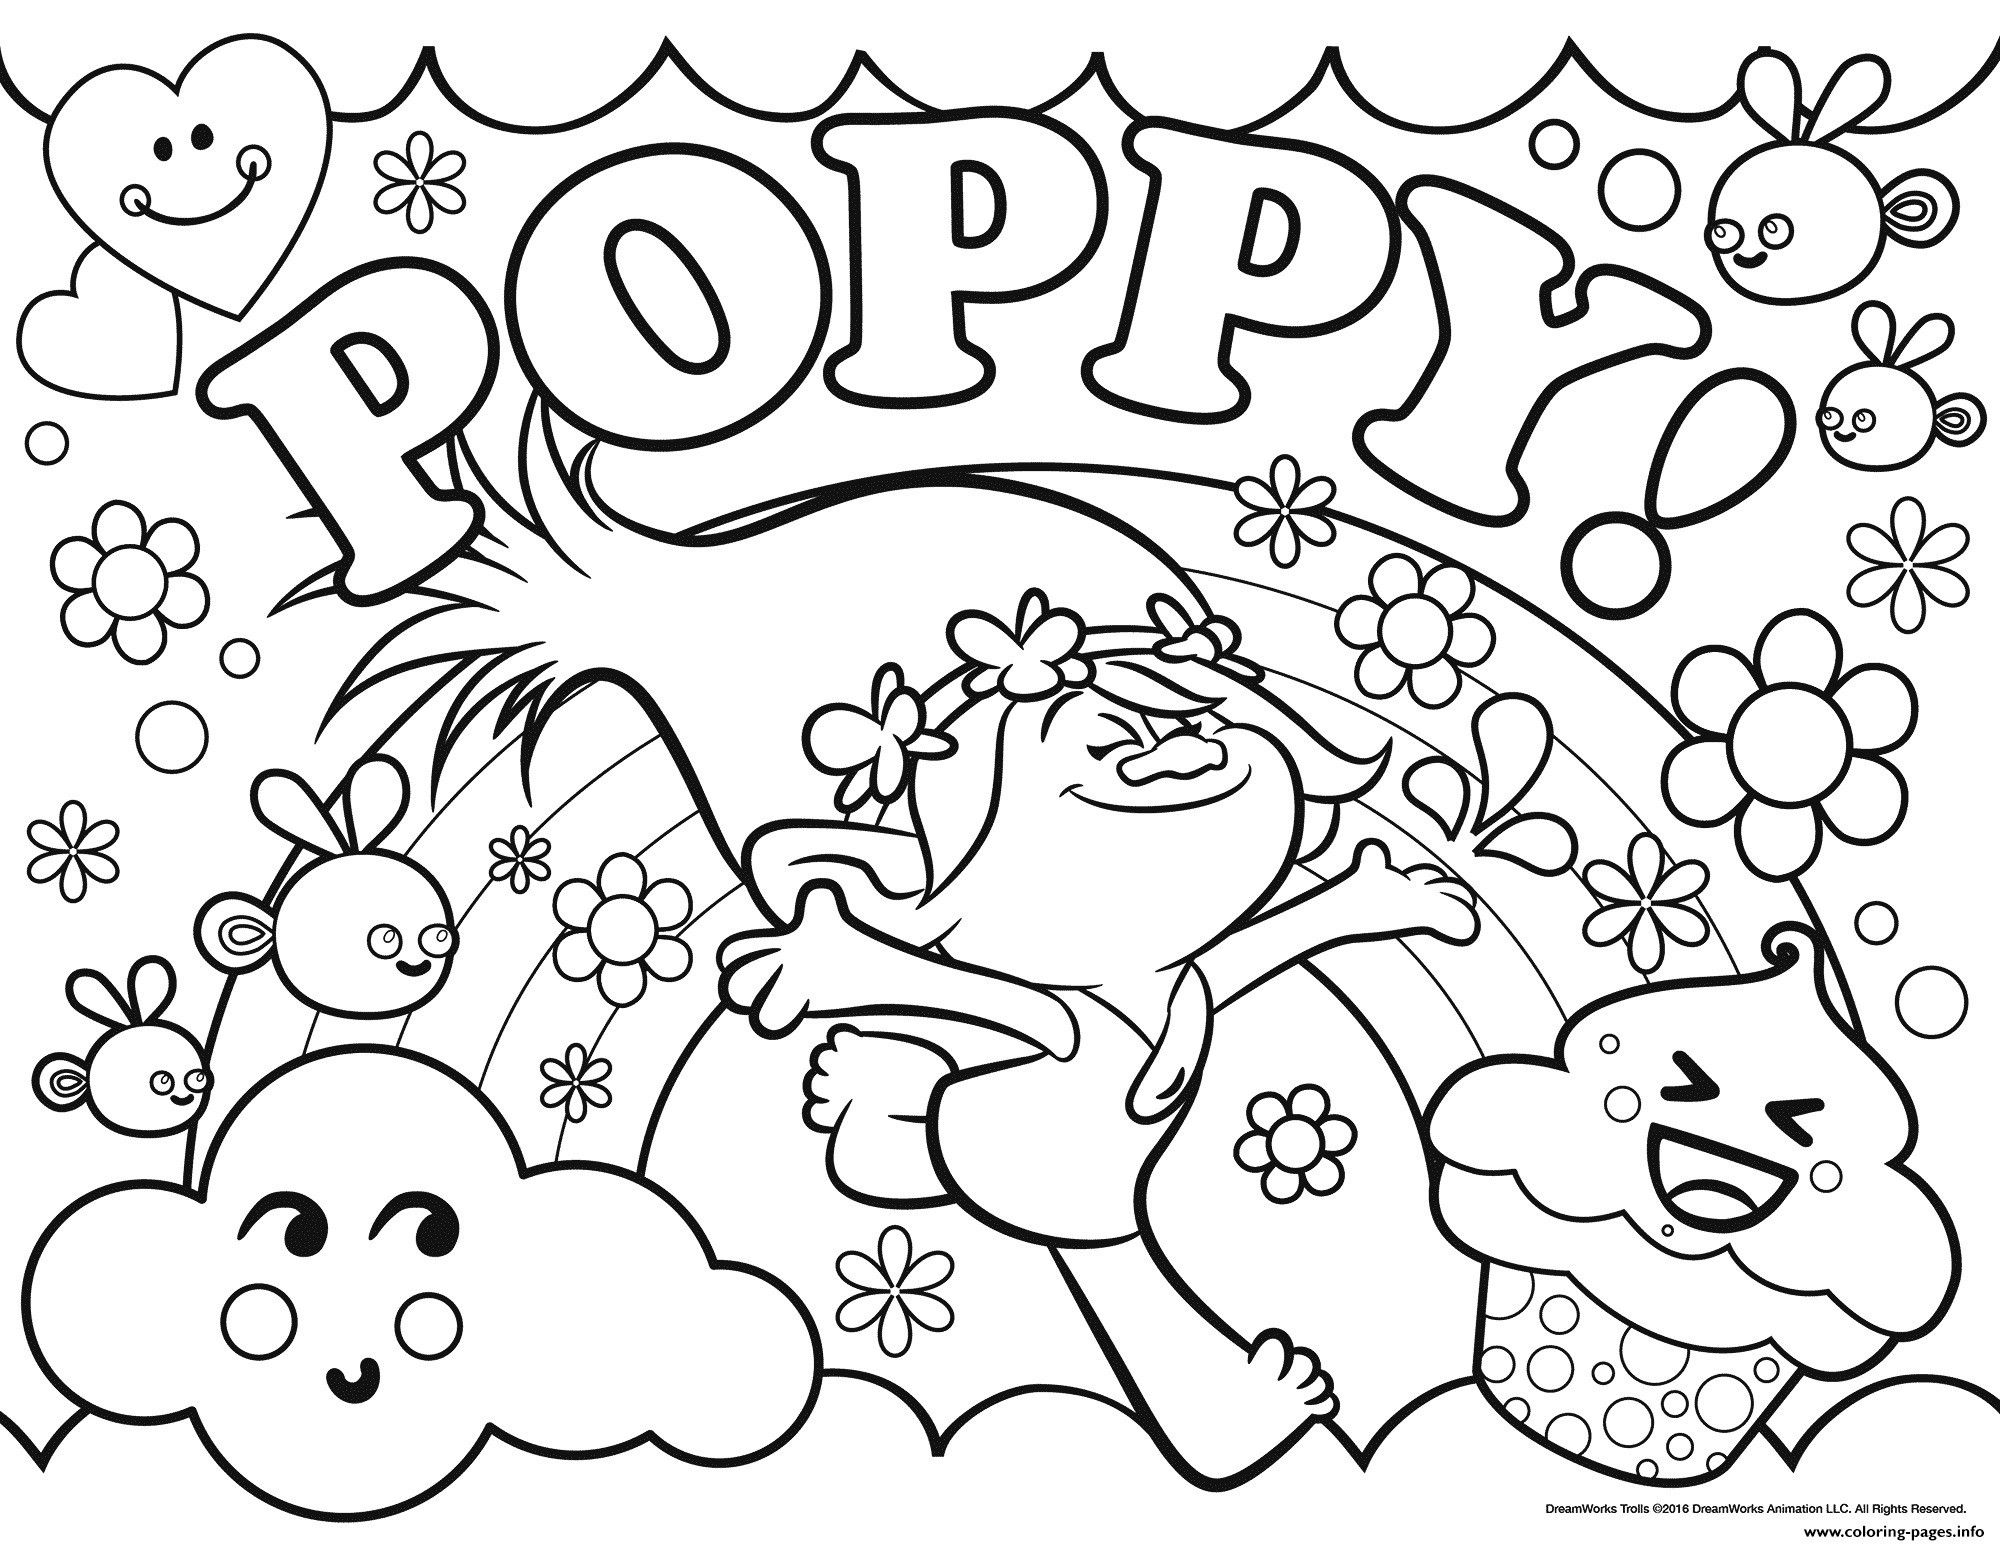 All Trolls Coloring Pages Through The Thousands Of Images On The Web With Regards To All Trolls Col Poppy Coloring Page Cartoon Coloring Pages Coloring Books